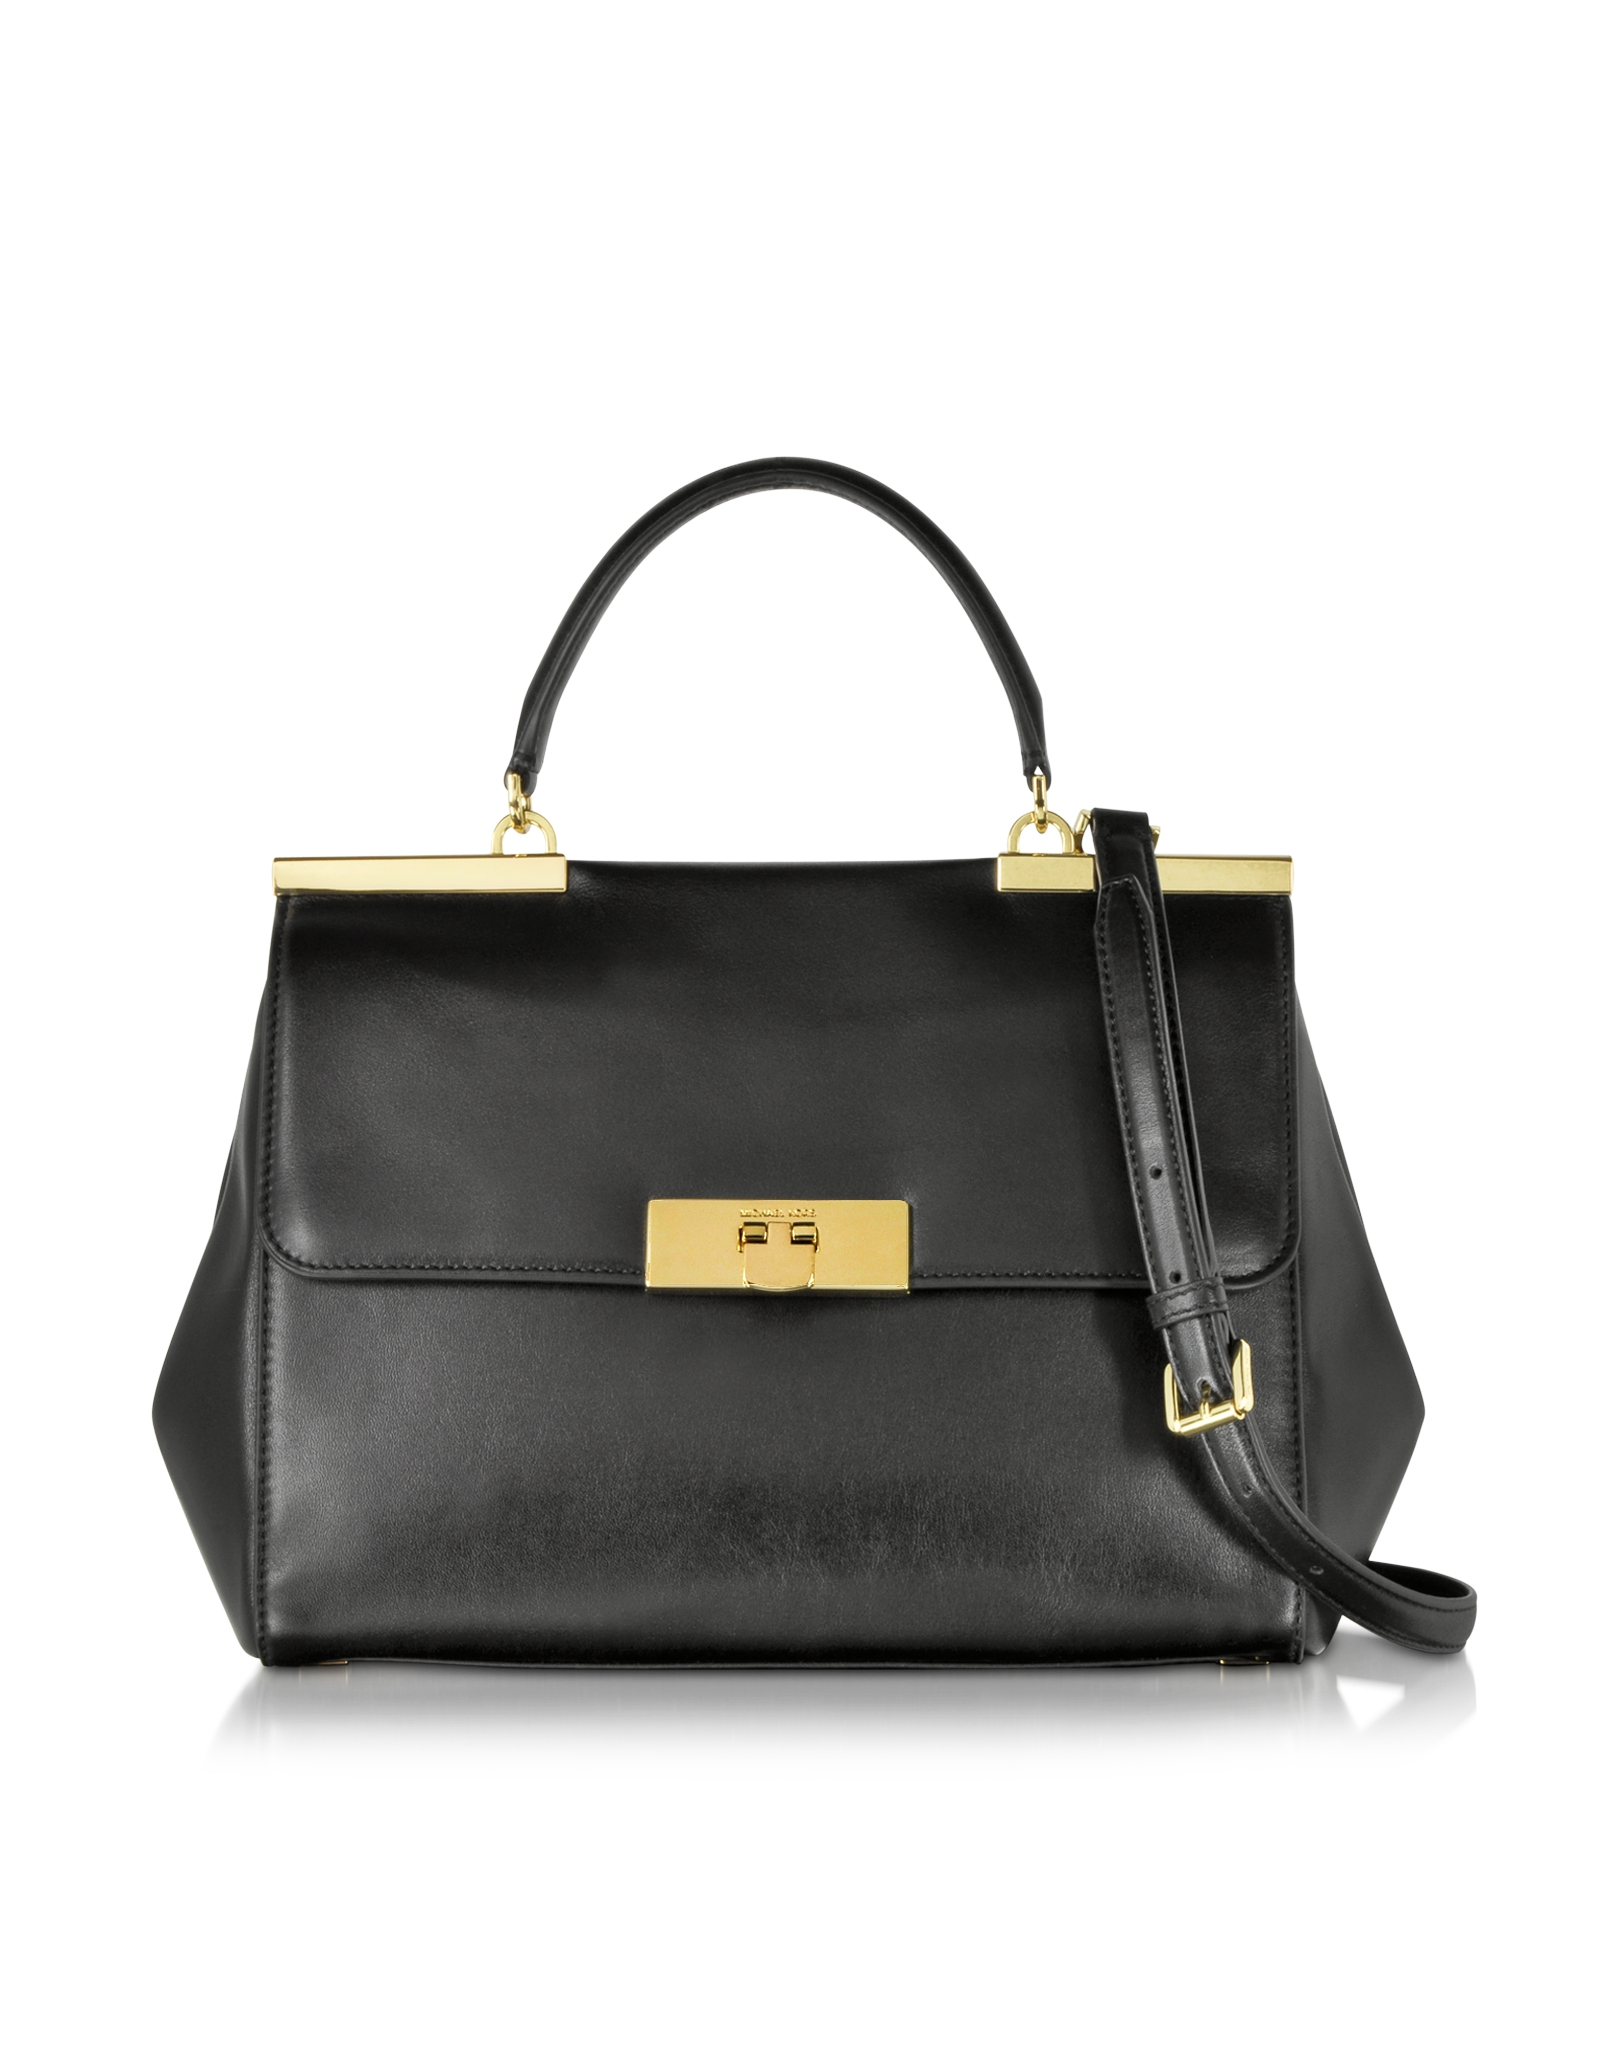 Michael kors Marlow Large Leather Satchel Bag in Black | Lyst